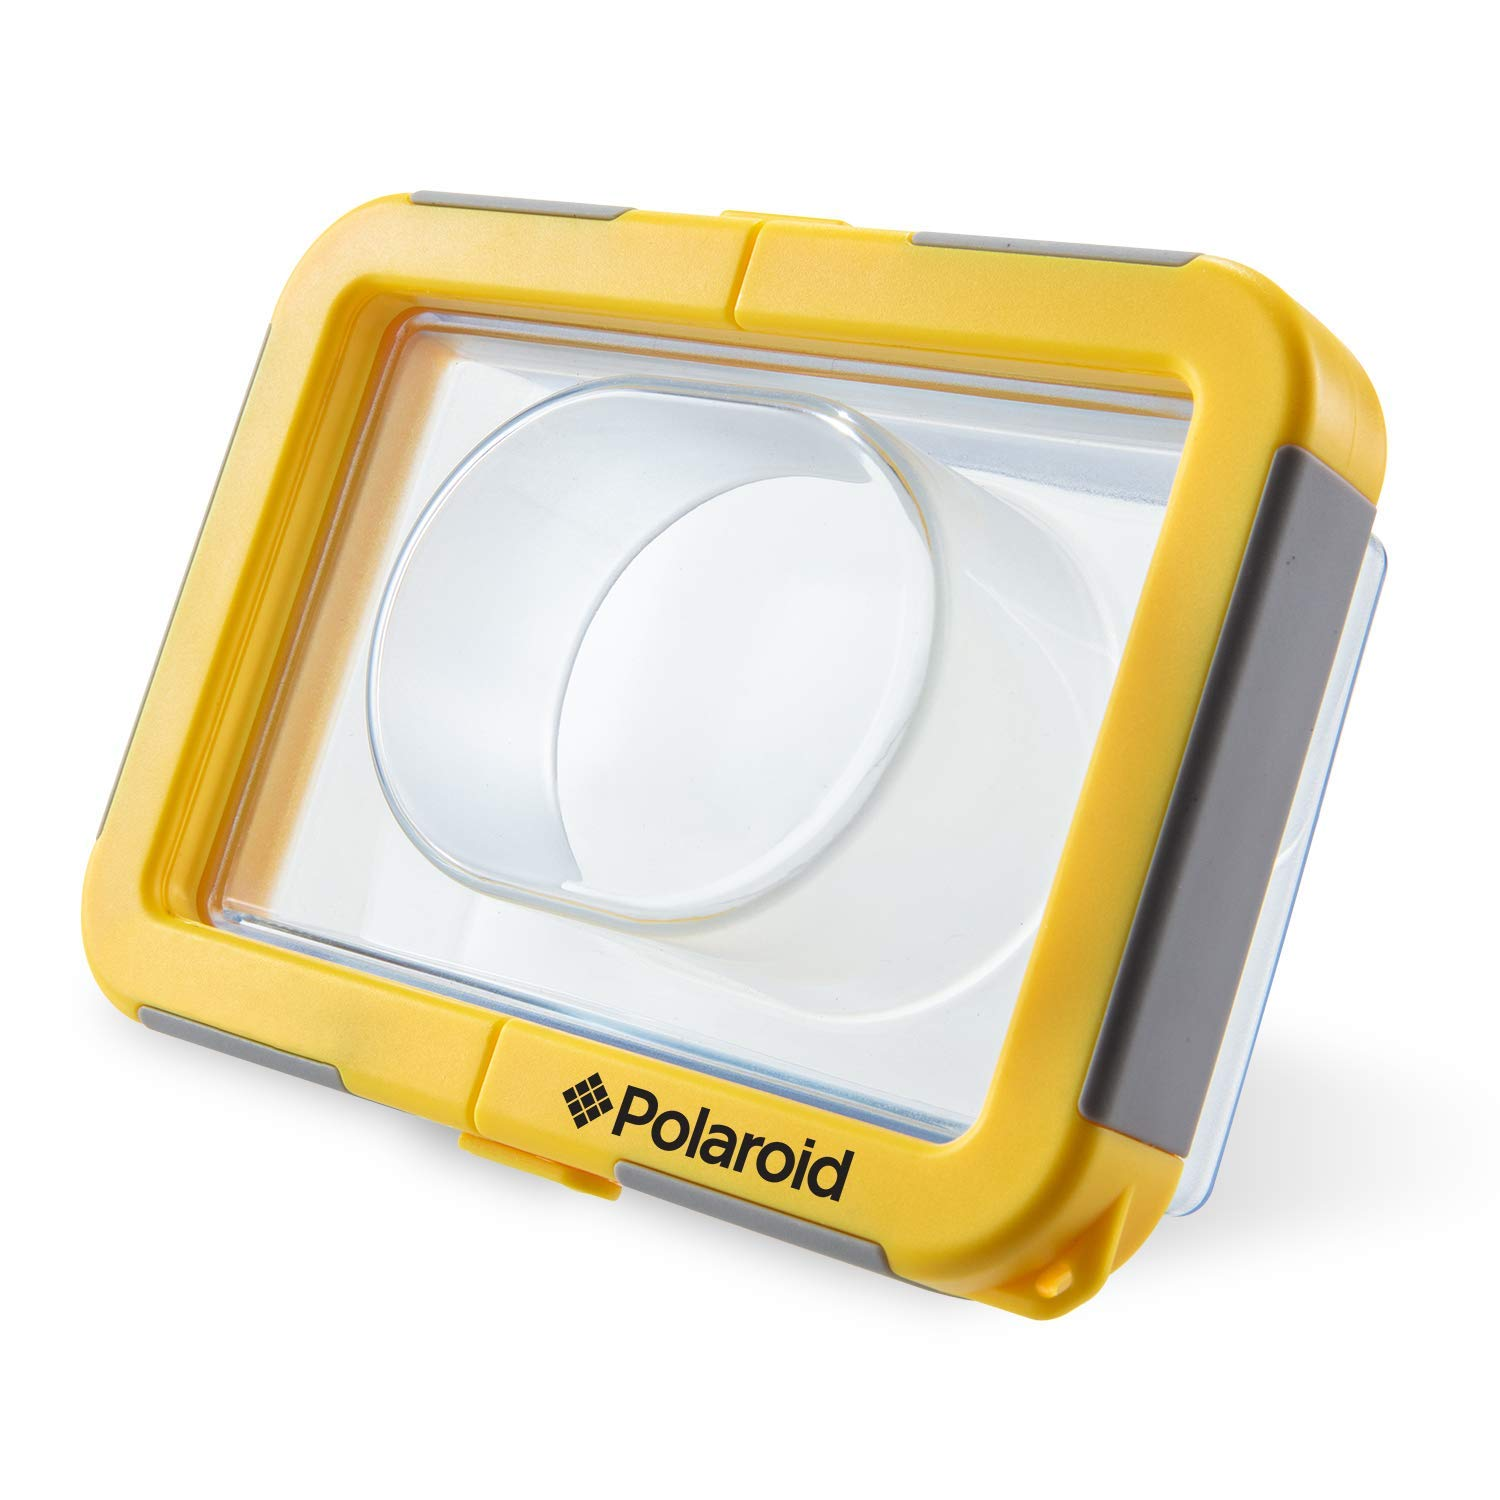 Polaroid Underwater Housing for Point & Shoot with Lens by Polaroid